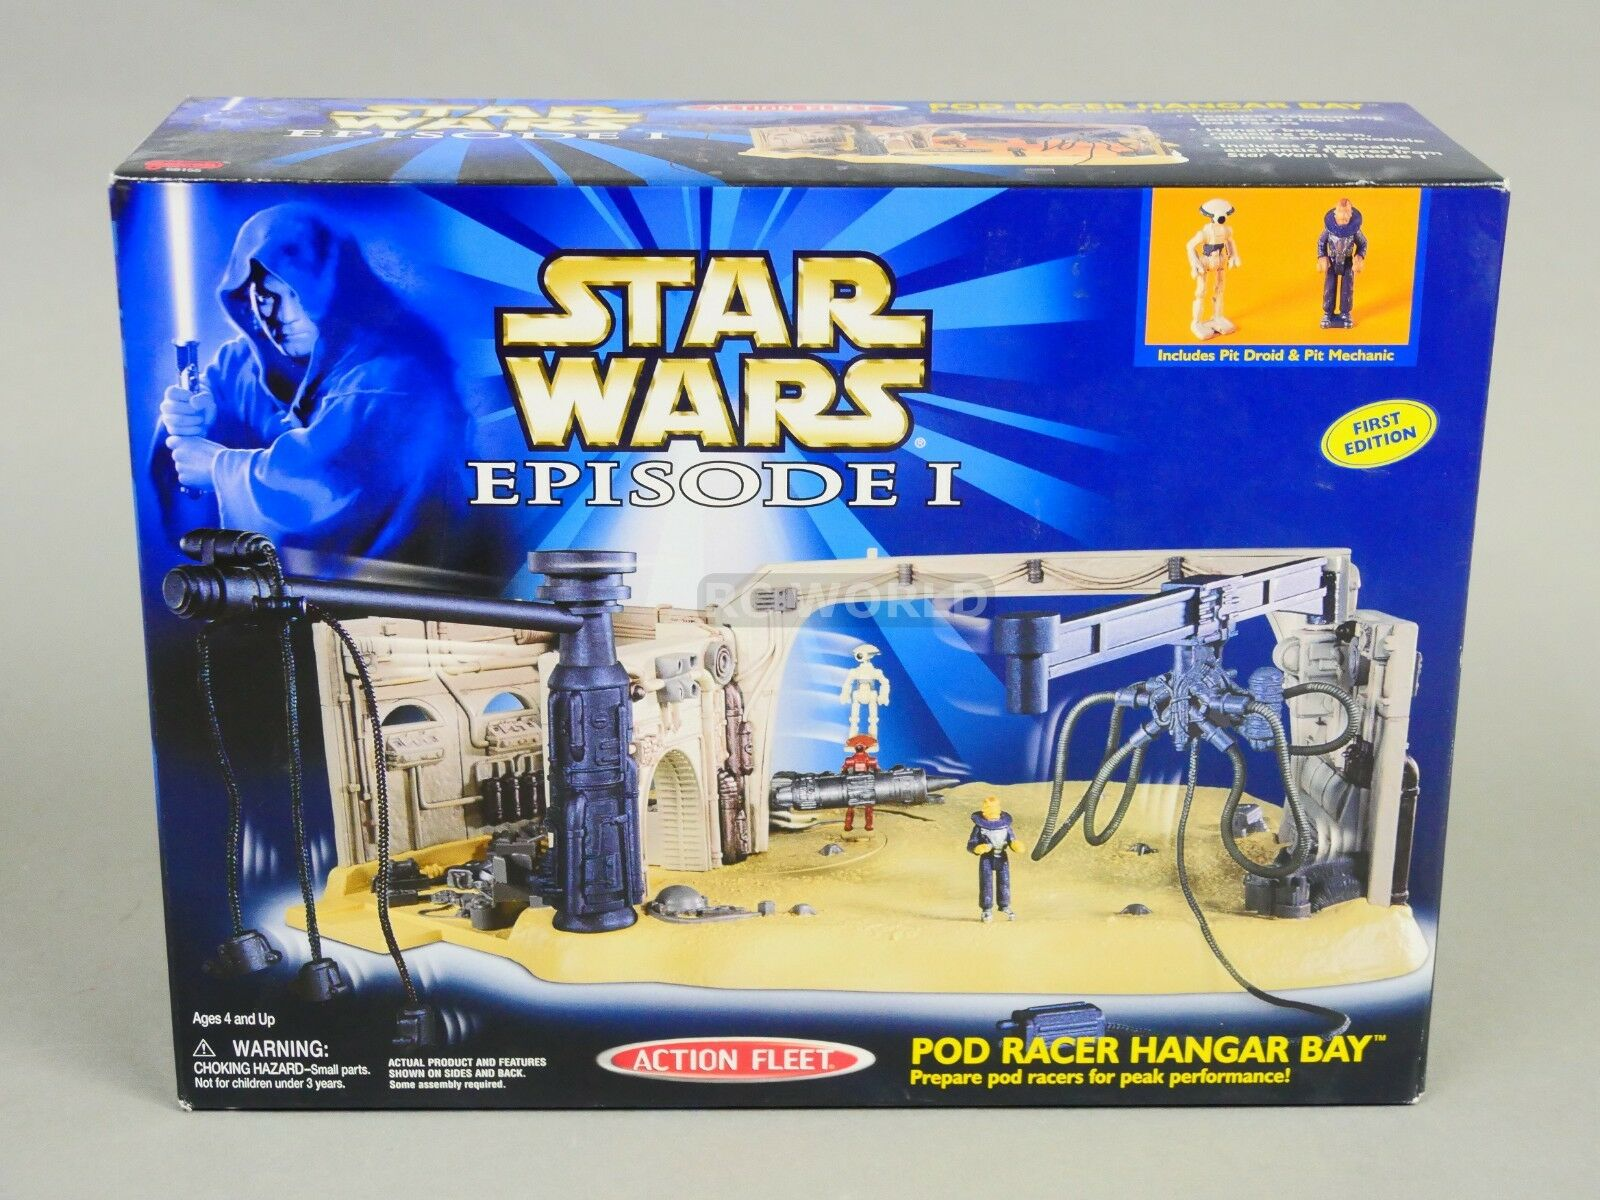 Star Wars Action Fleet POD RACER HANGAR BAY Play Set -NEW-  rk1